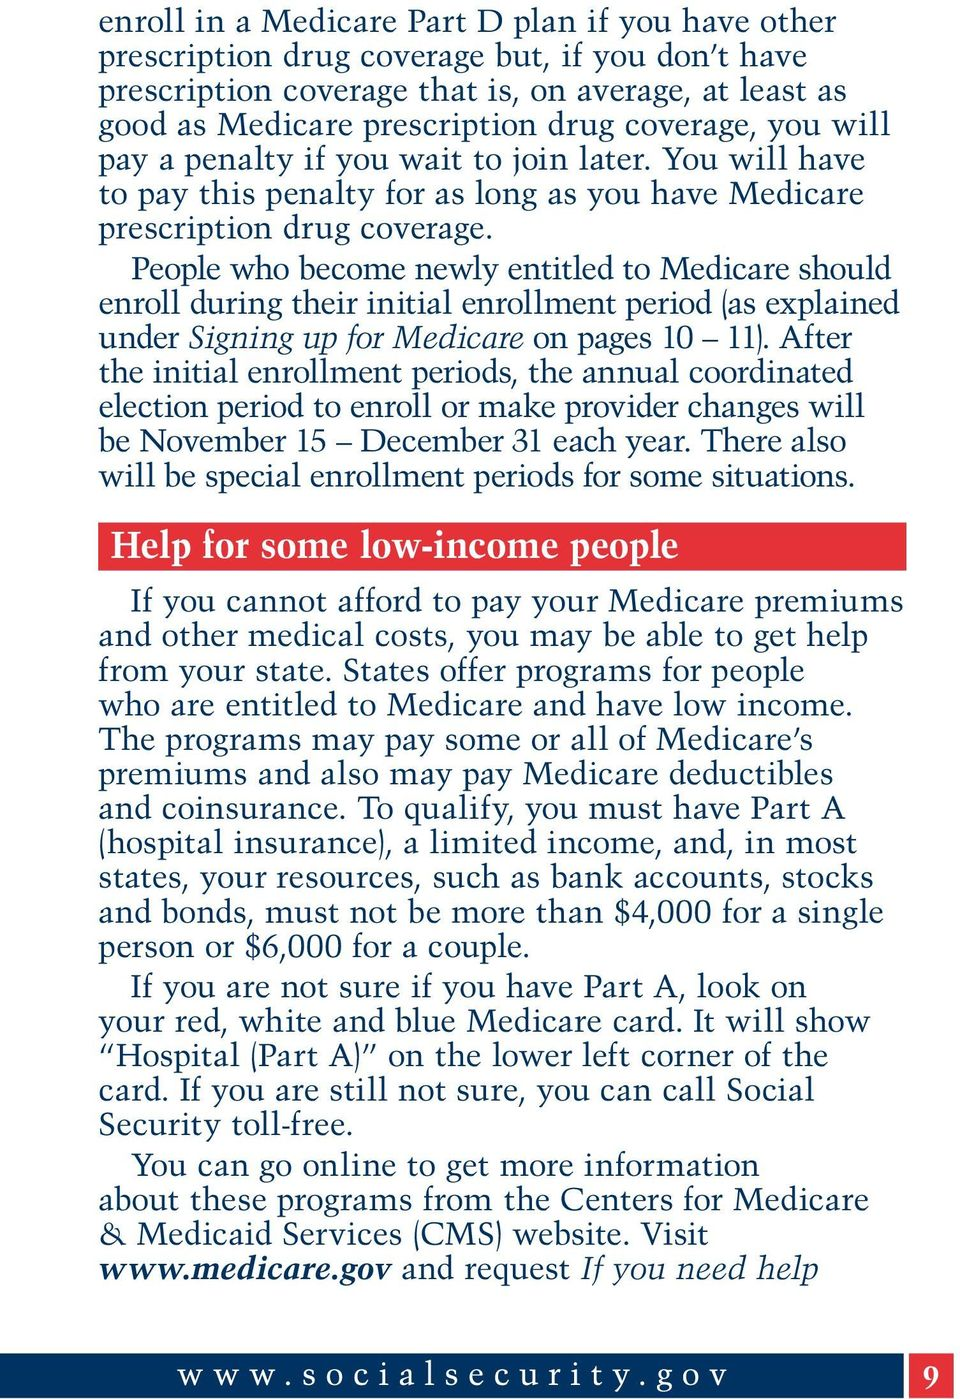 People who become newly entitled to Medicare should enroll during their initial enrollment period (as explained under Signing up for Medicare on pages 10 11).